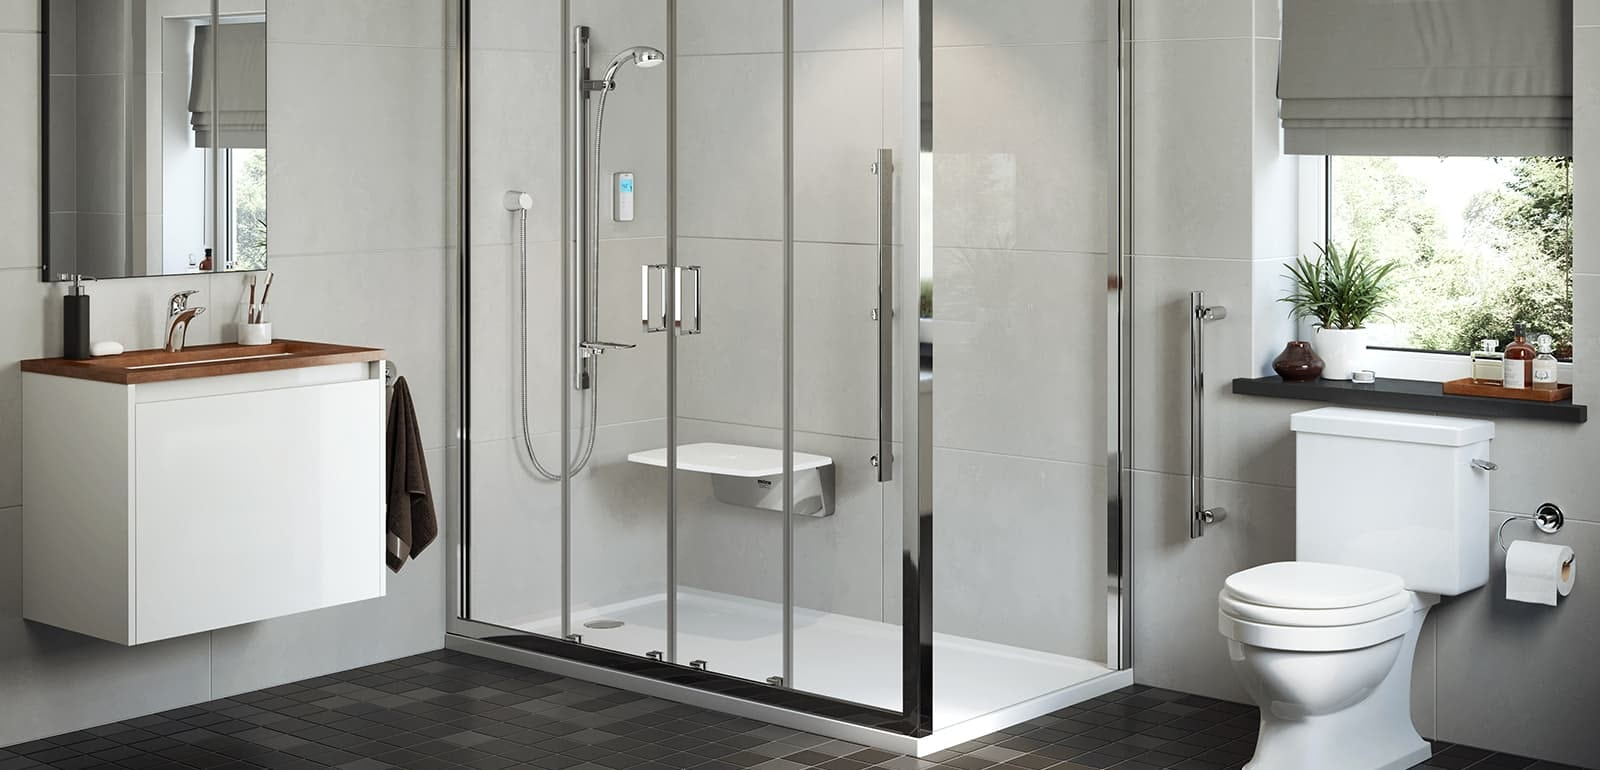 Expert advice: Mira's shower enclosure buying guide